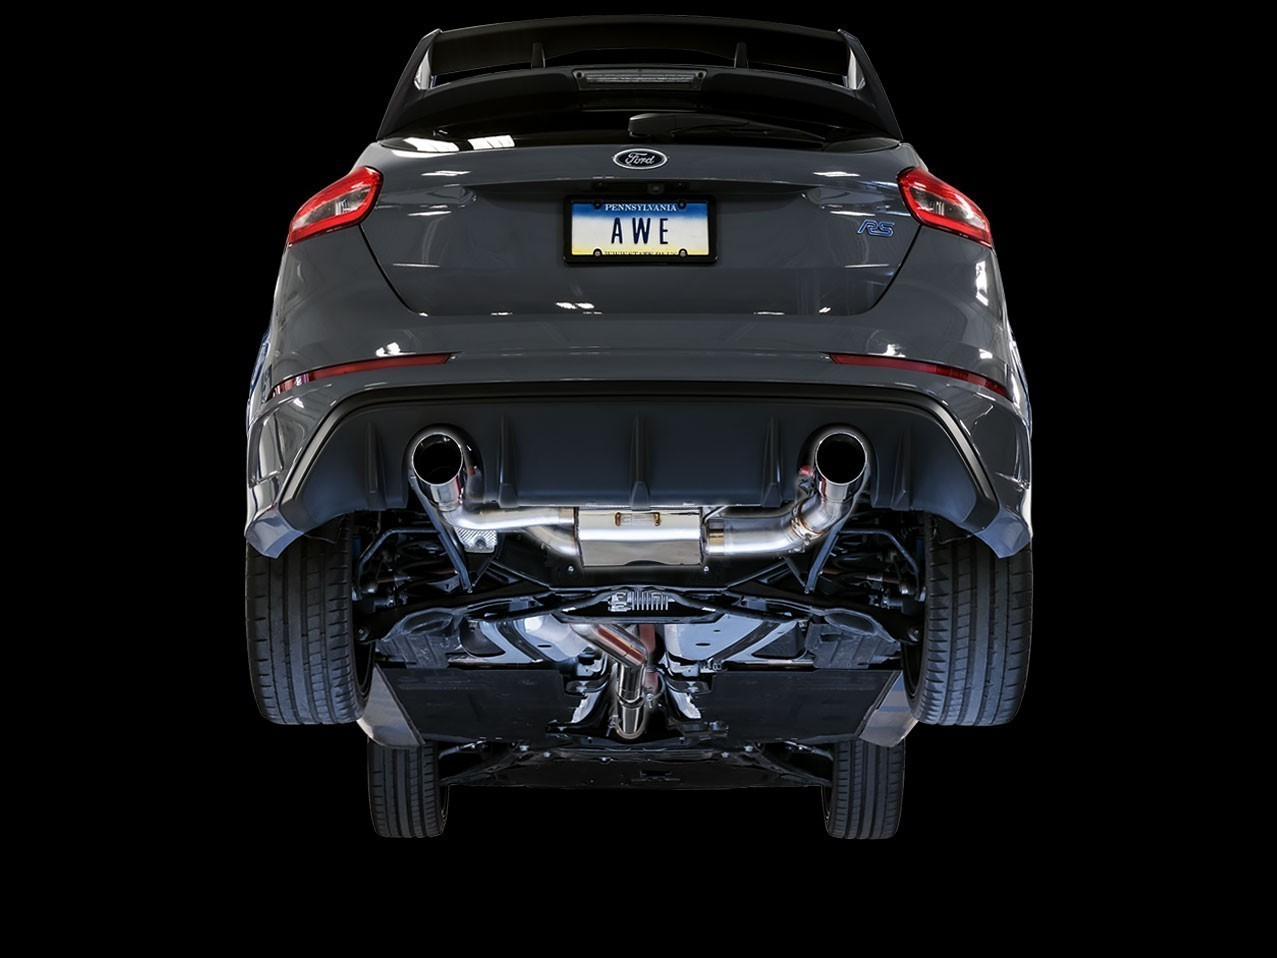 AWE SwitchPath Cat-back Exhaust (with Remote) for Ford Focus RS - Chrome Silver Tips